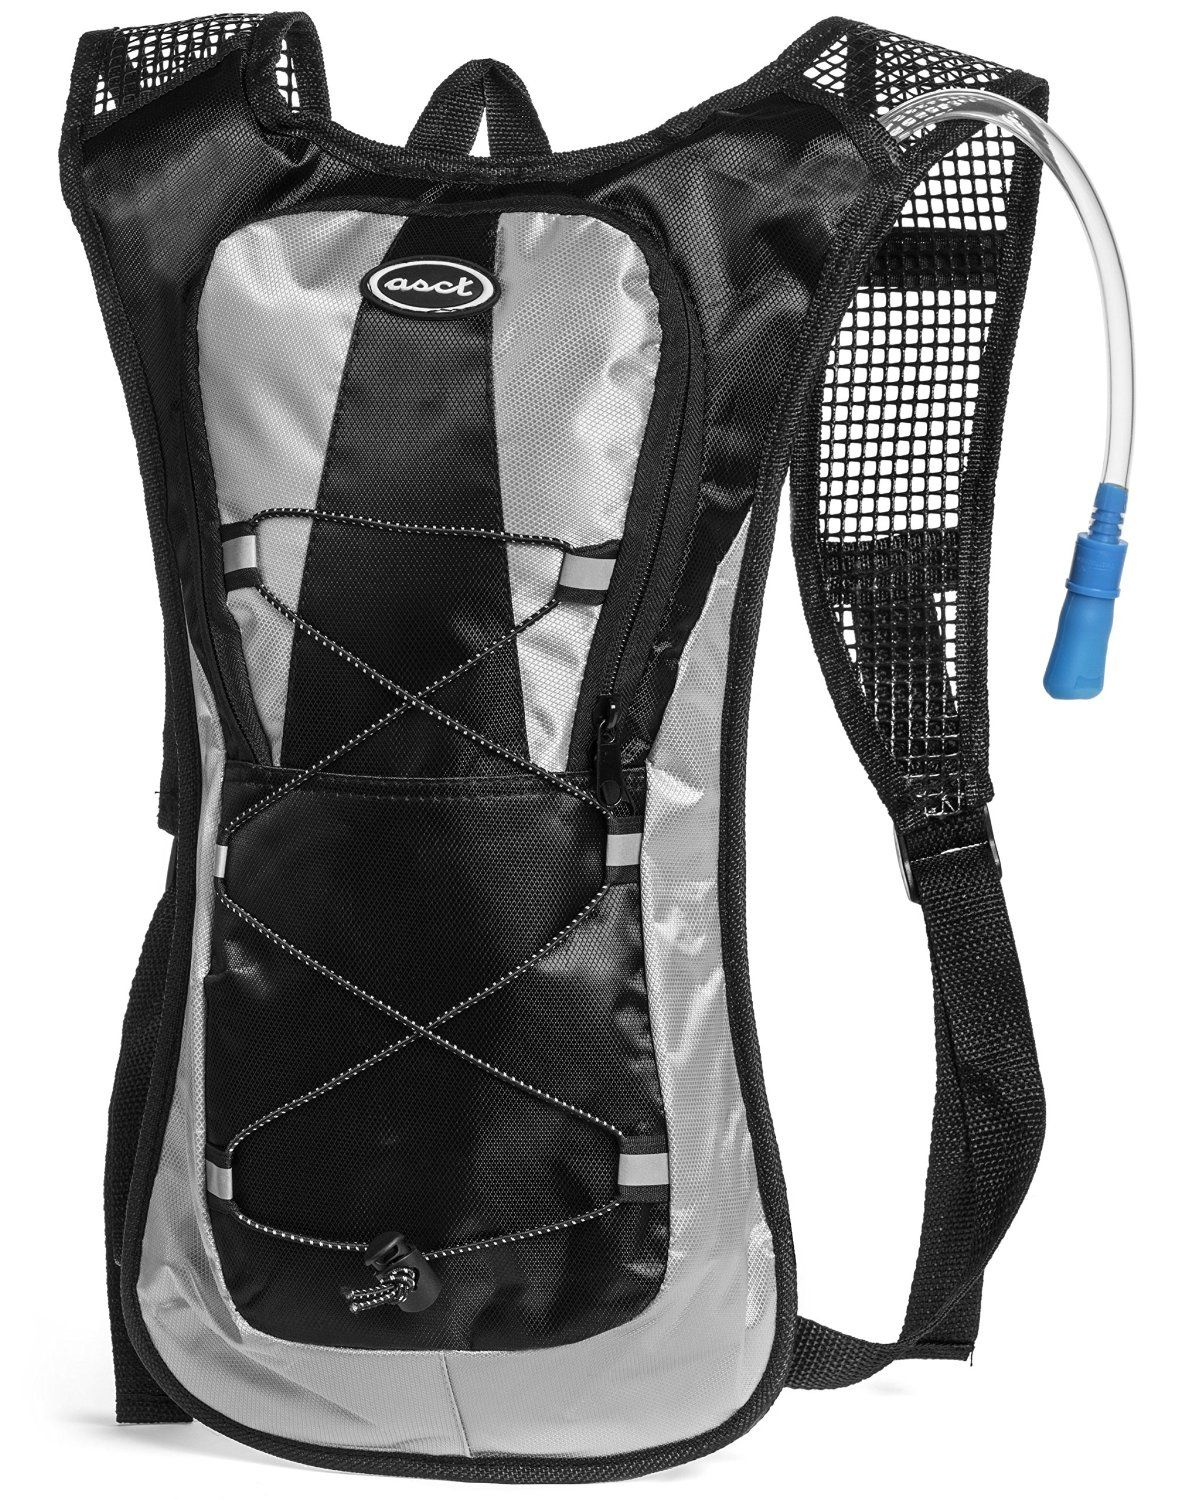 Hydration Pack - Ultra Lightweight! - Minimalist Backpack and 2L ...